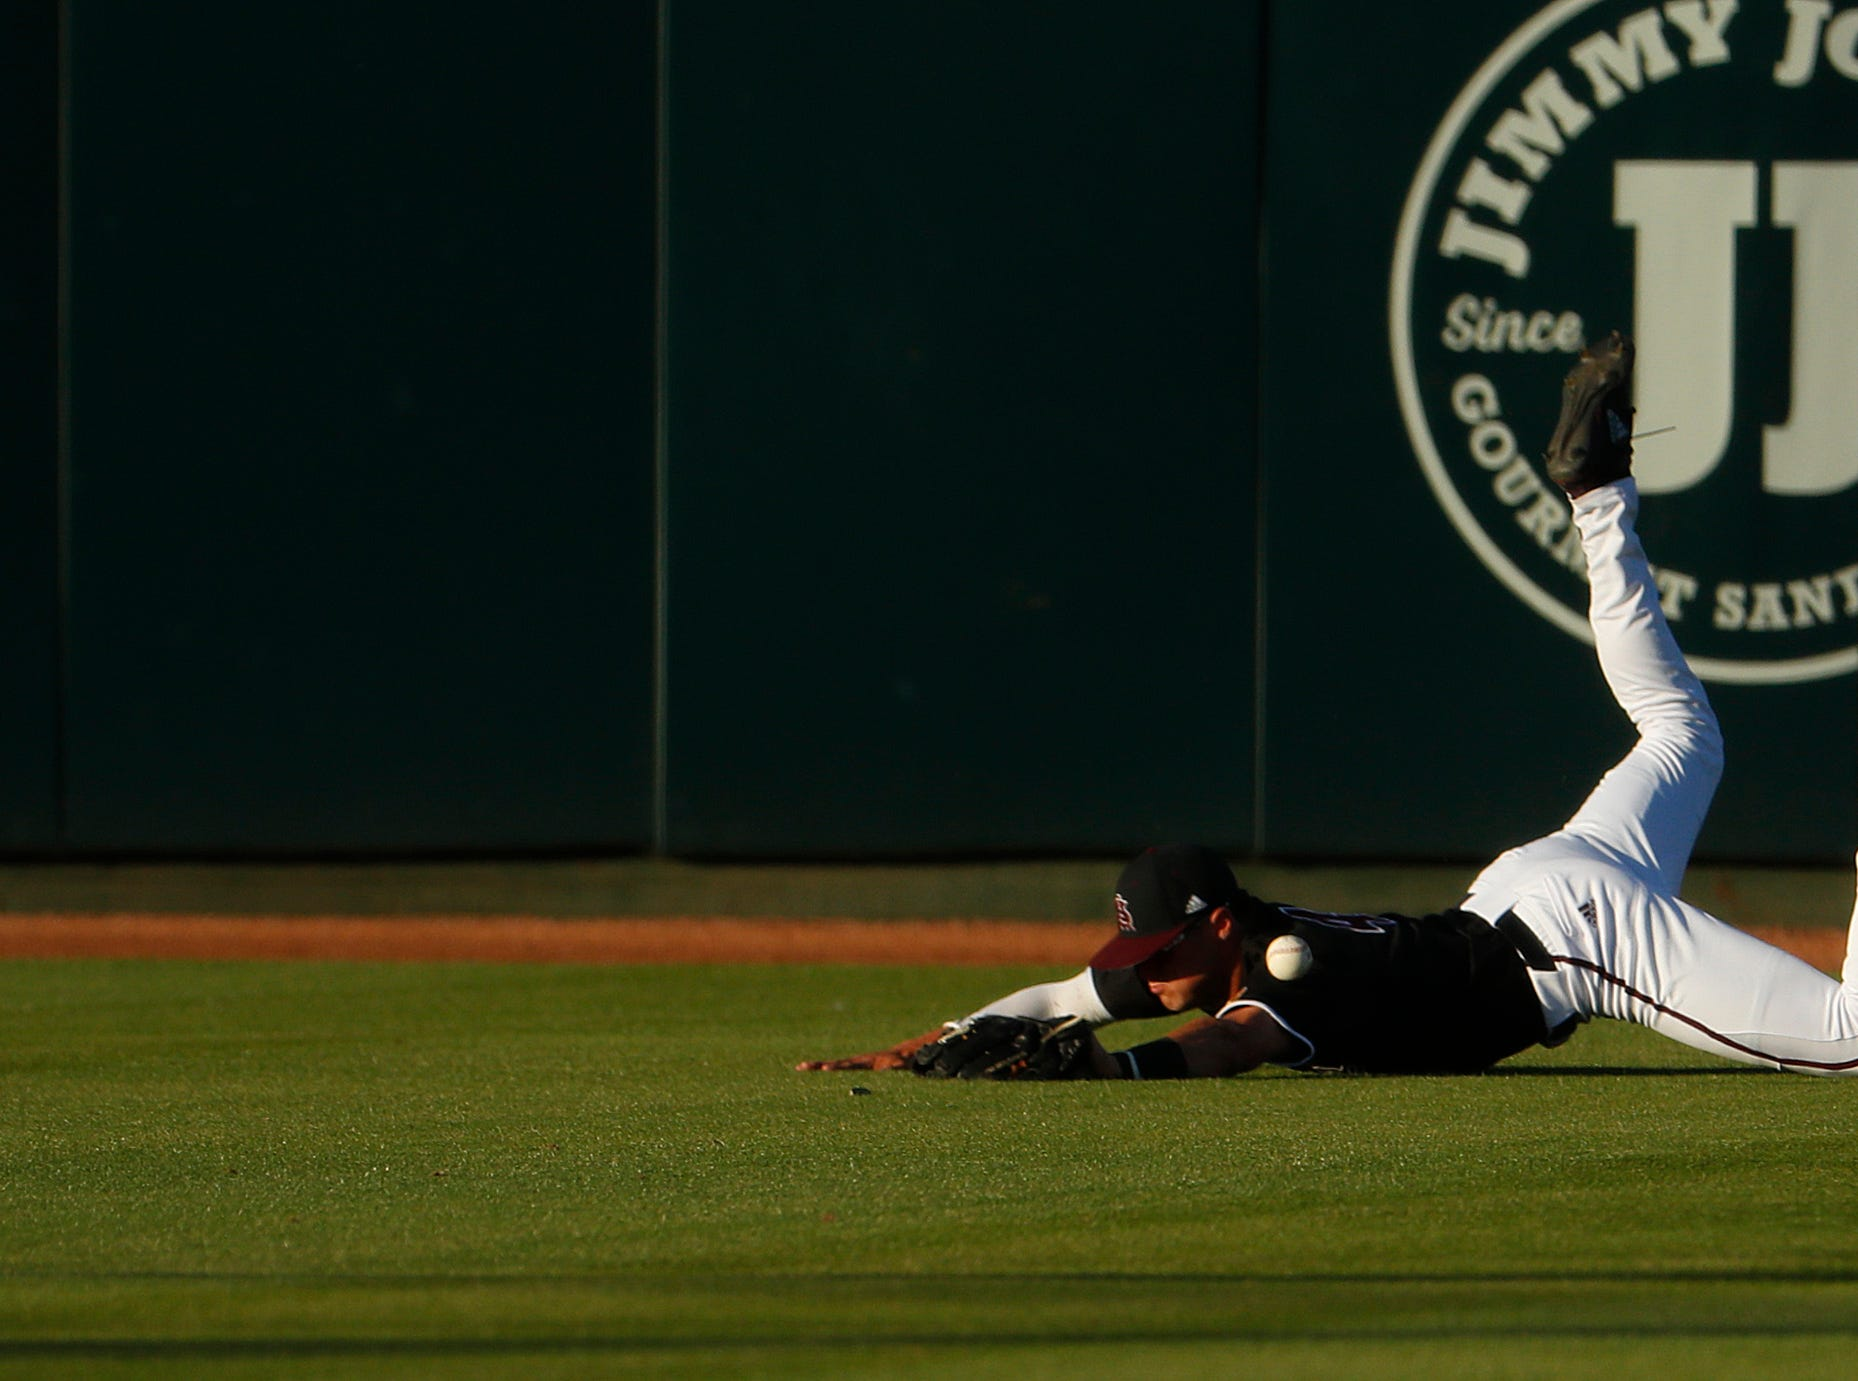 ASU's Hunter Bishop (4) dives for a ball but is unable to come up with the catch against Stanford at Phoenix Municipal Stadium in Phoenix, Ariz. on May 23, 2019.